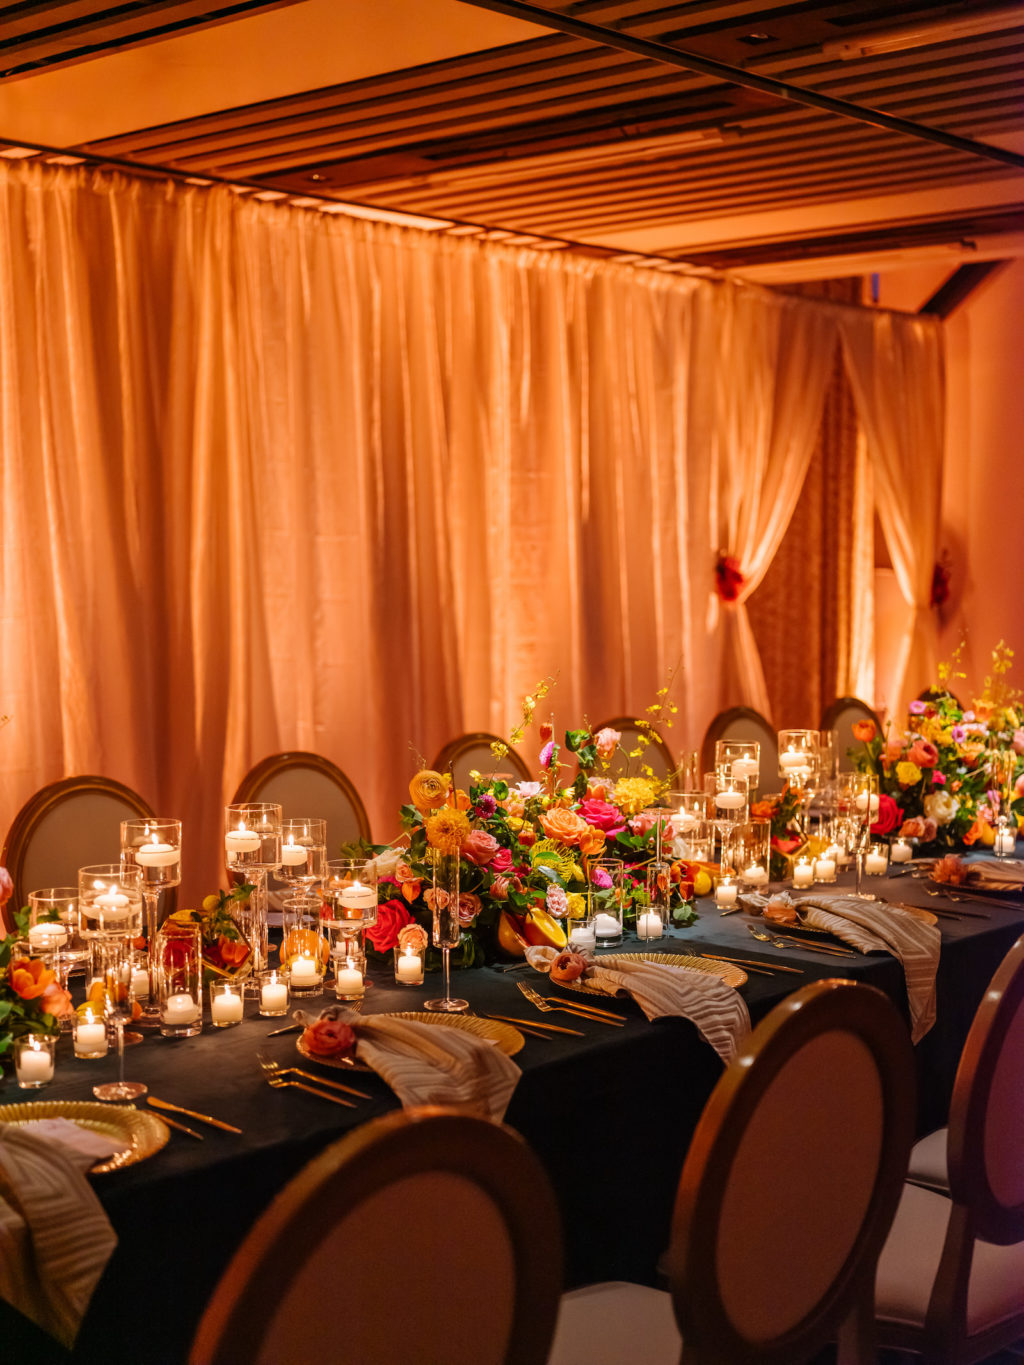 Moroccan Inspired Elopement Wedding Reception Decor, Orange Linen Drapery, Long Feasting Table with Dark Green Tablecloth, Colorful and Bright Orange, Yellow, Pink Flower Centerpieces, High Low Floating and Votive Candles, Gold Chargers and Flatware | Tampa Bay Wedding Planner UNIQUE Weddings + Events | Wedding Furniture Rentals Kate Ryan Event Rentals